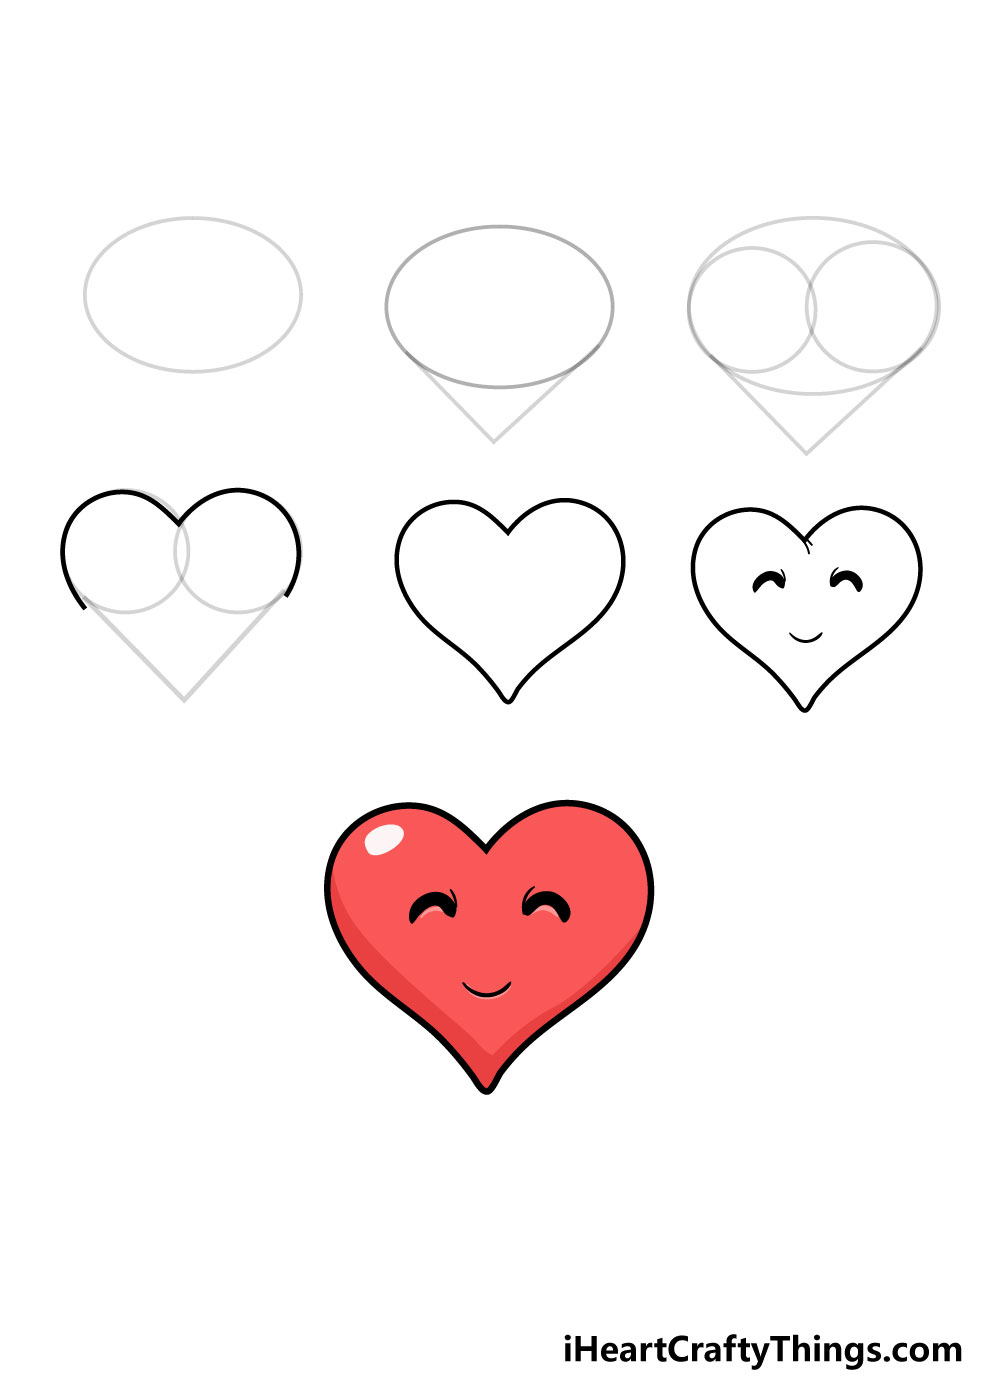 how to draw heart in 7 steps